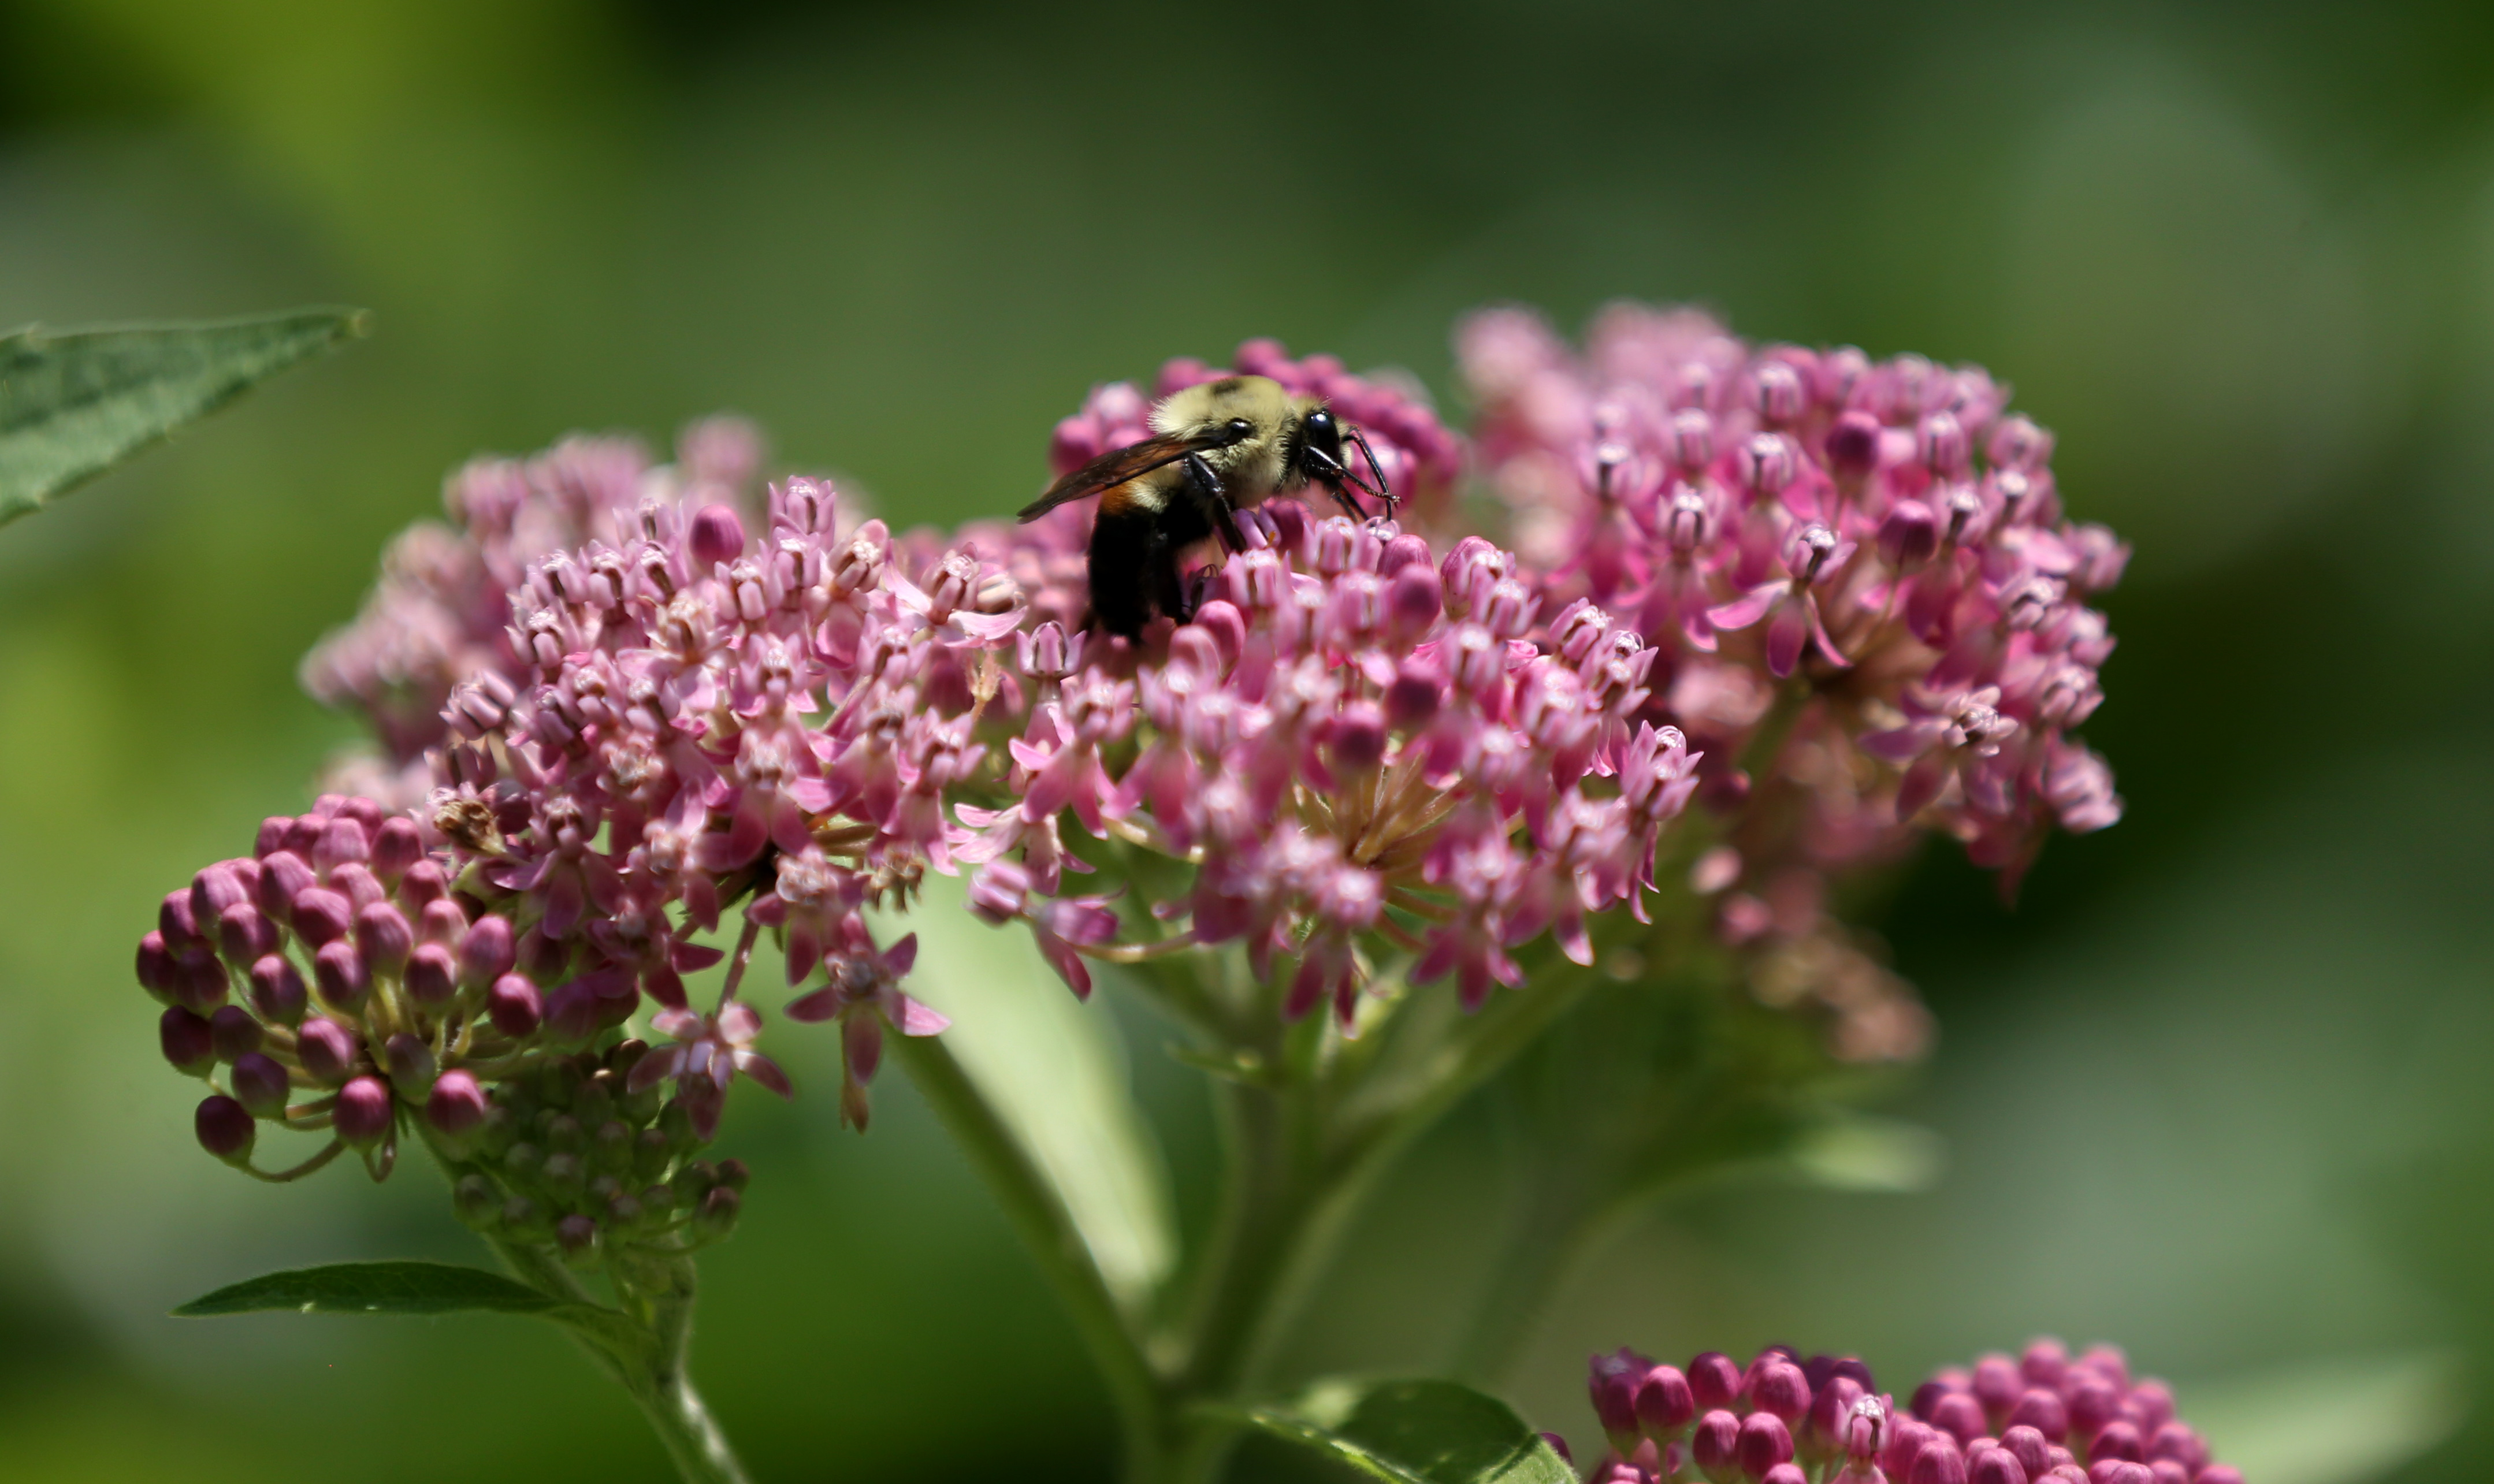 A bumblebee in the garden in the forest.